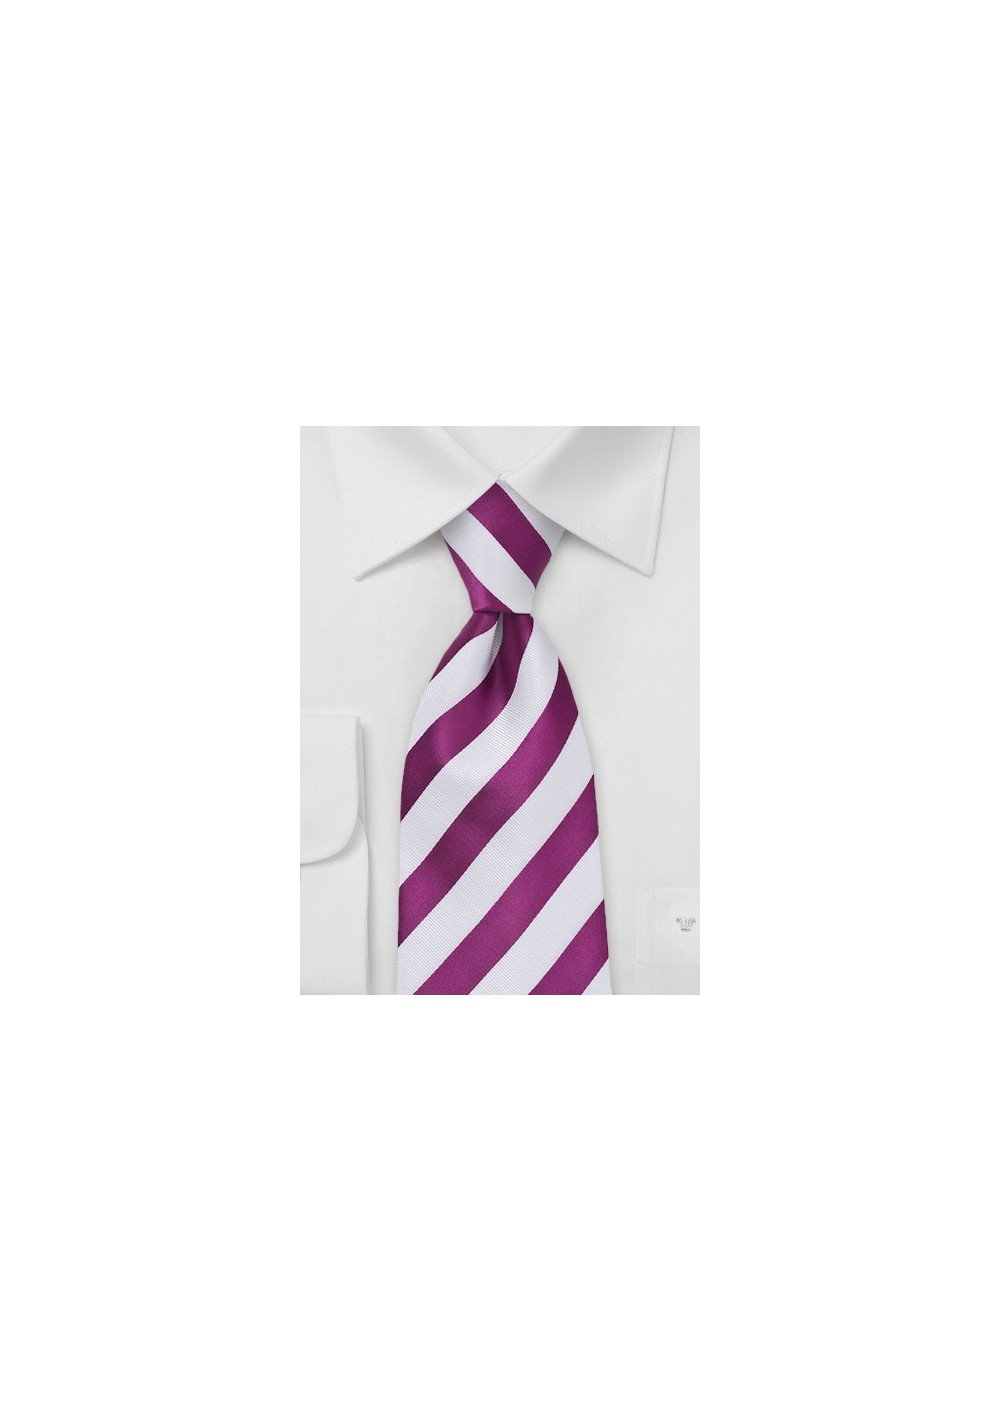 Hot Pink and White Striped Tie